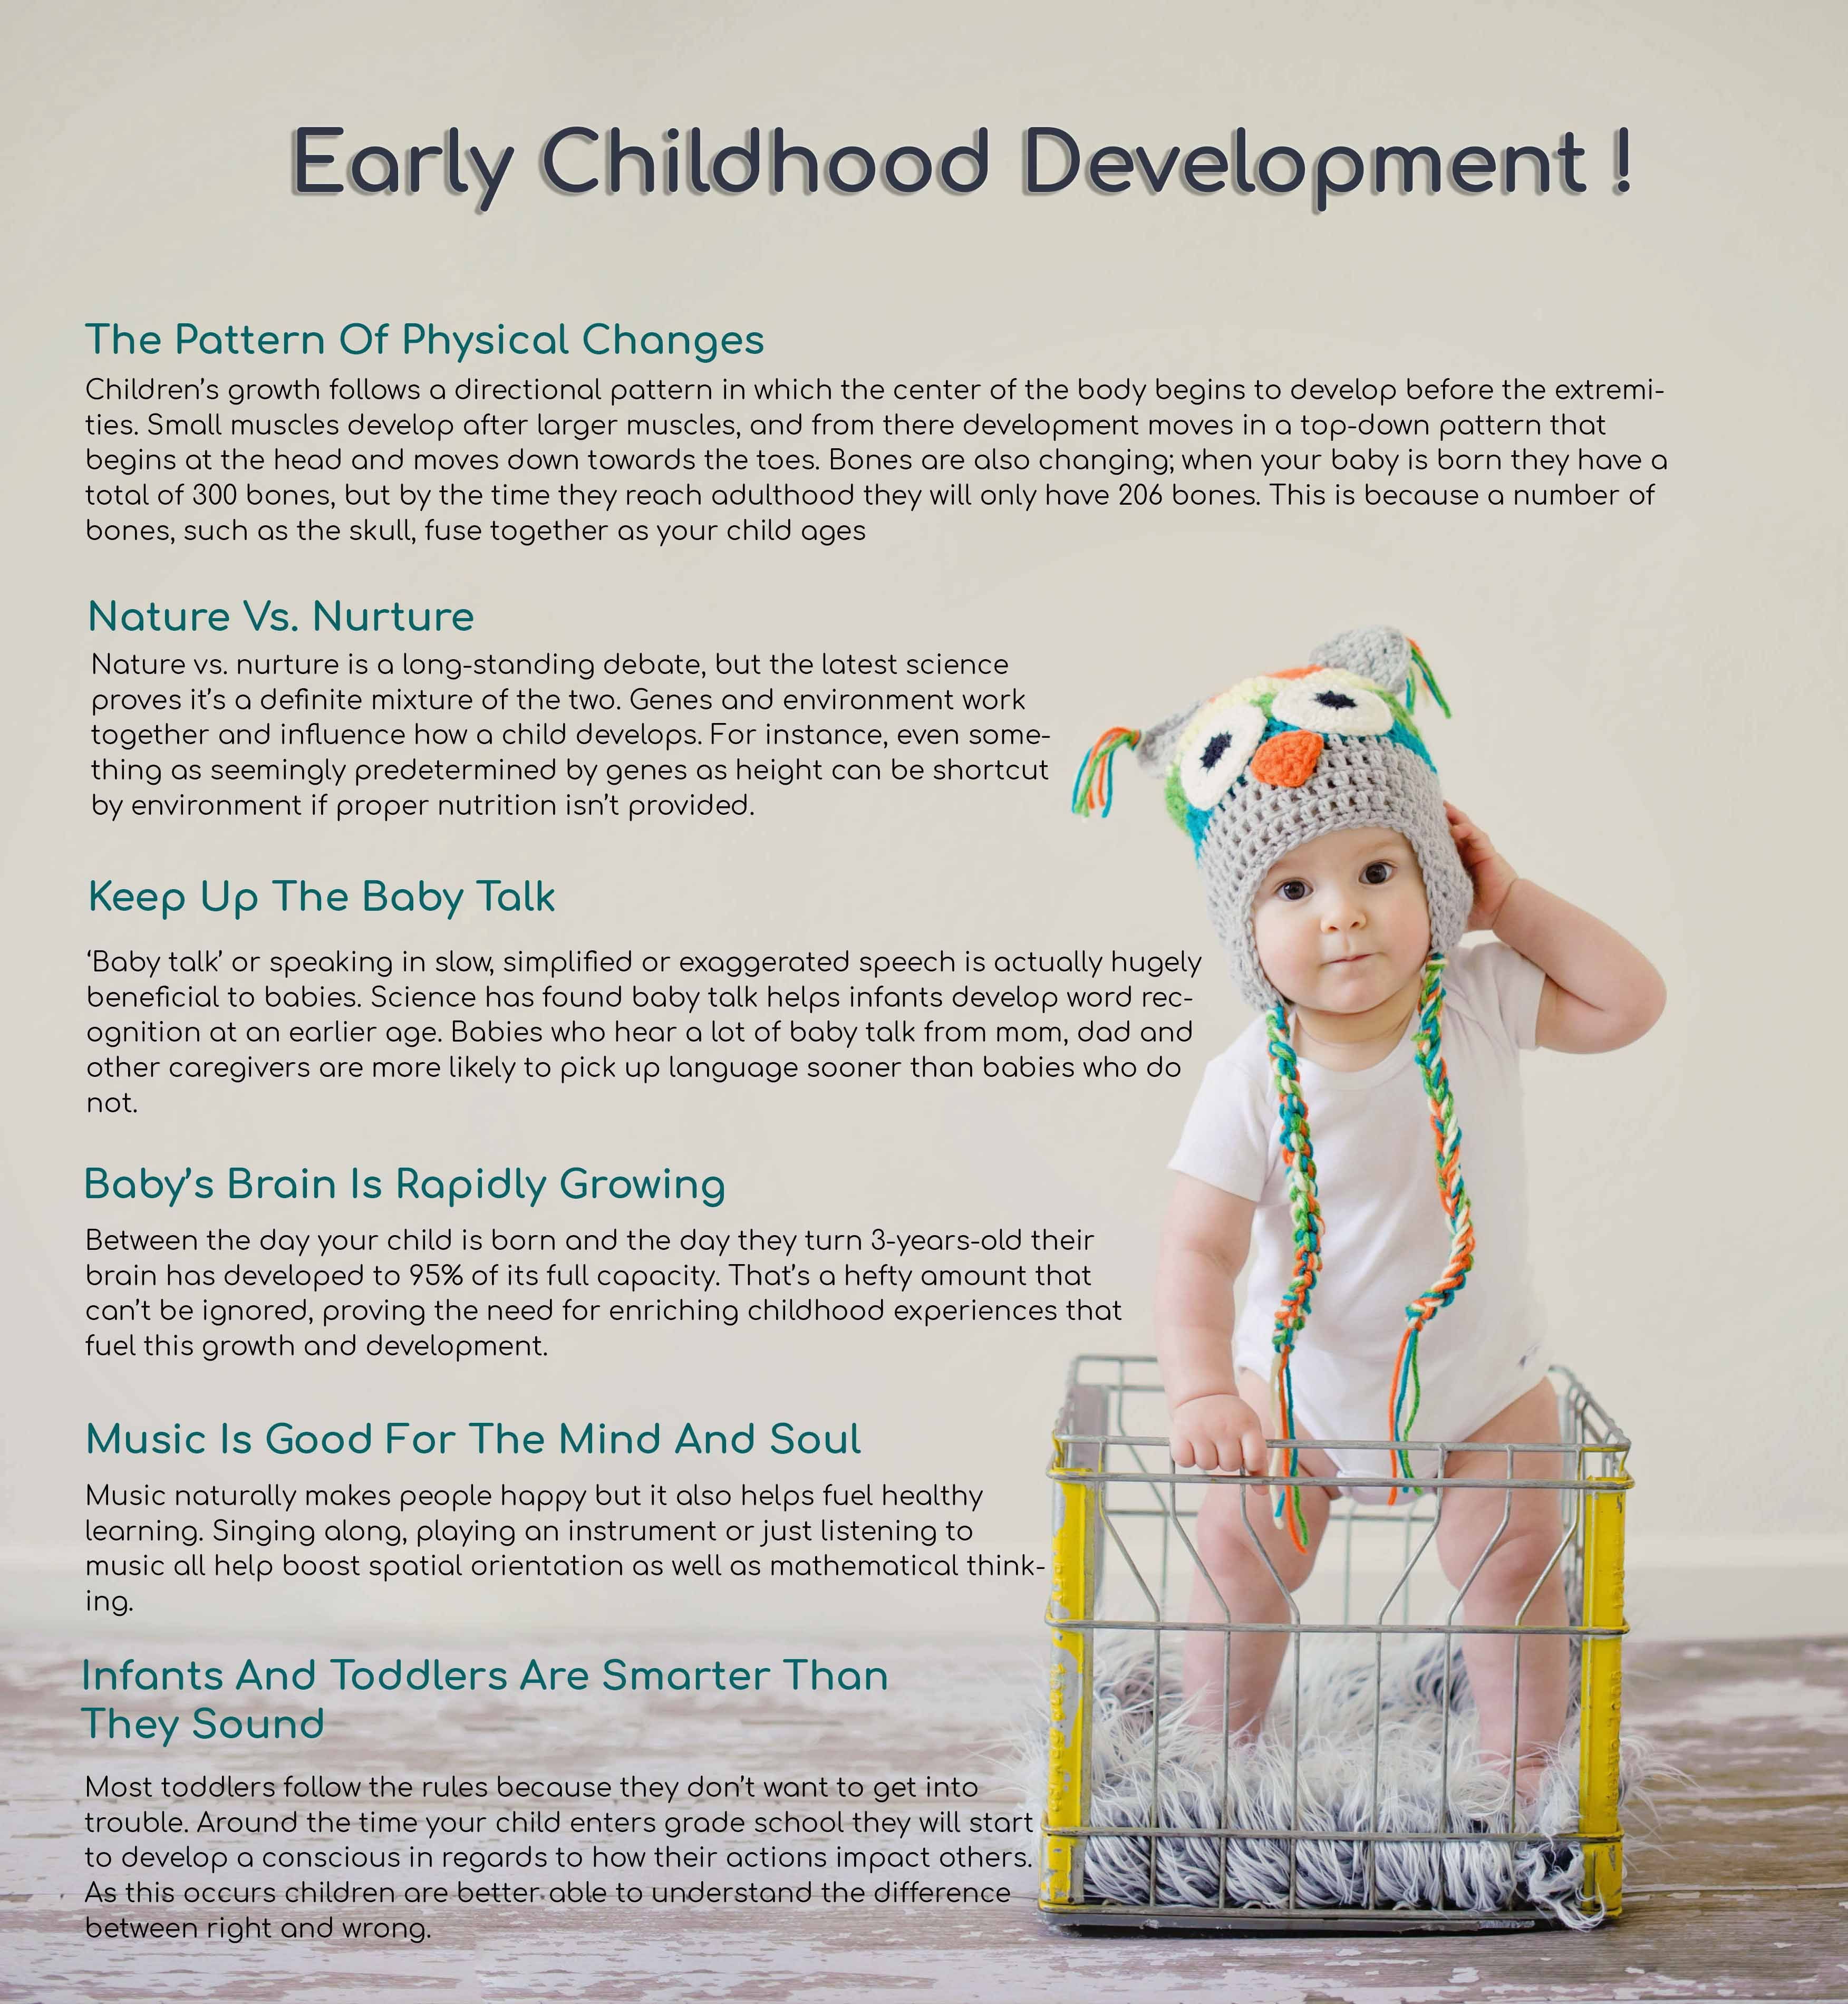 Enriching Early Childhood Experiences >> Early Childhood Development Facts By Headsmart Best Preschool In